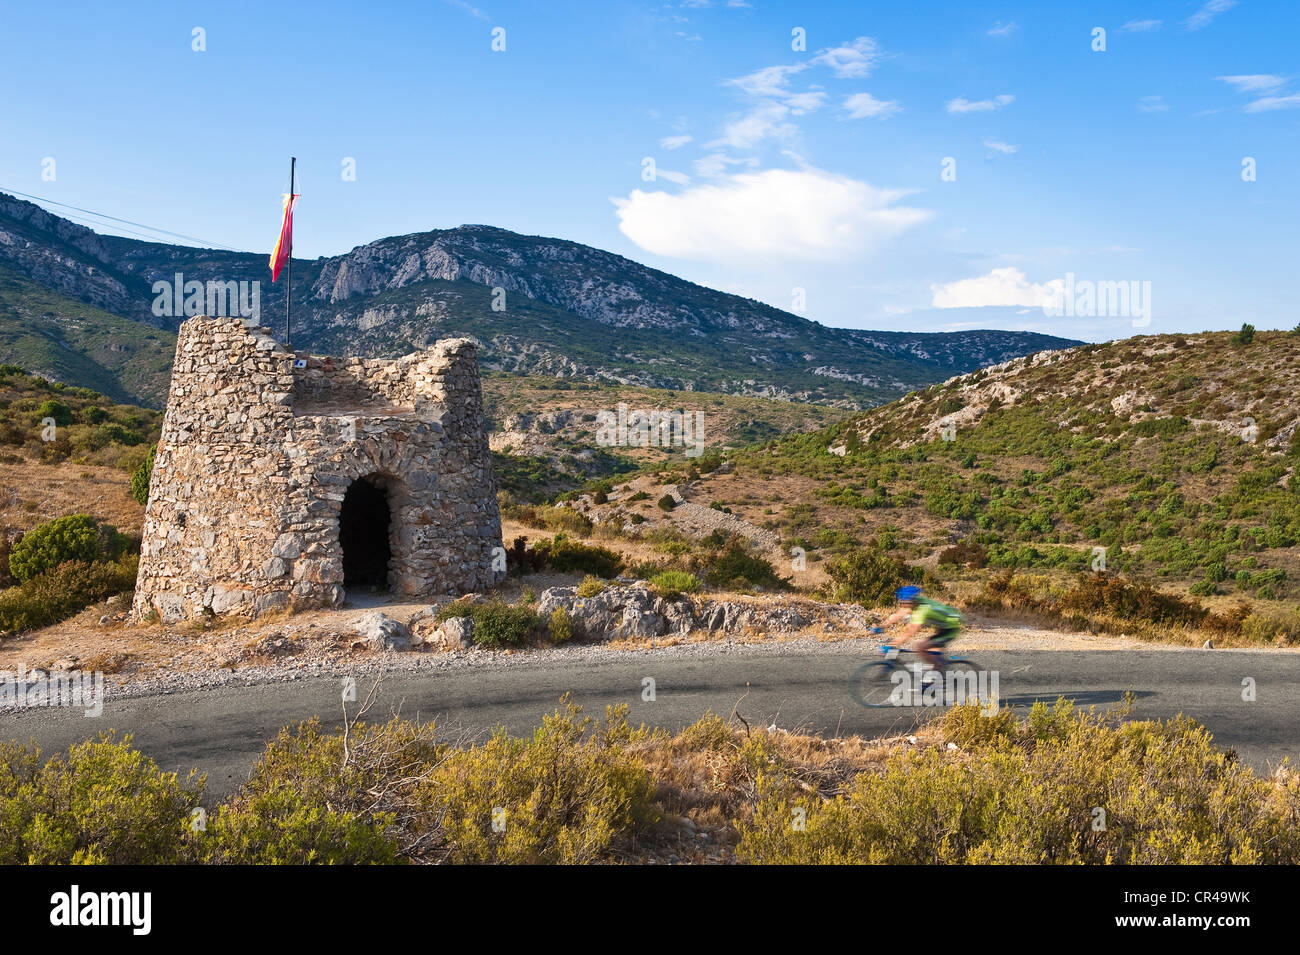 France, Aude, Corbieres, Feuilla, watch tower on the Route Treilles, road located on the old border separating France - Stock Image